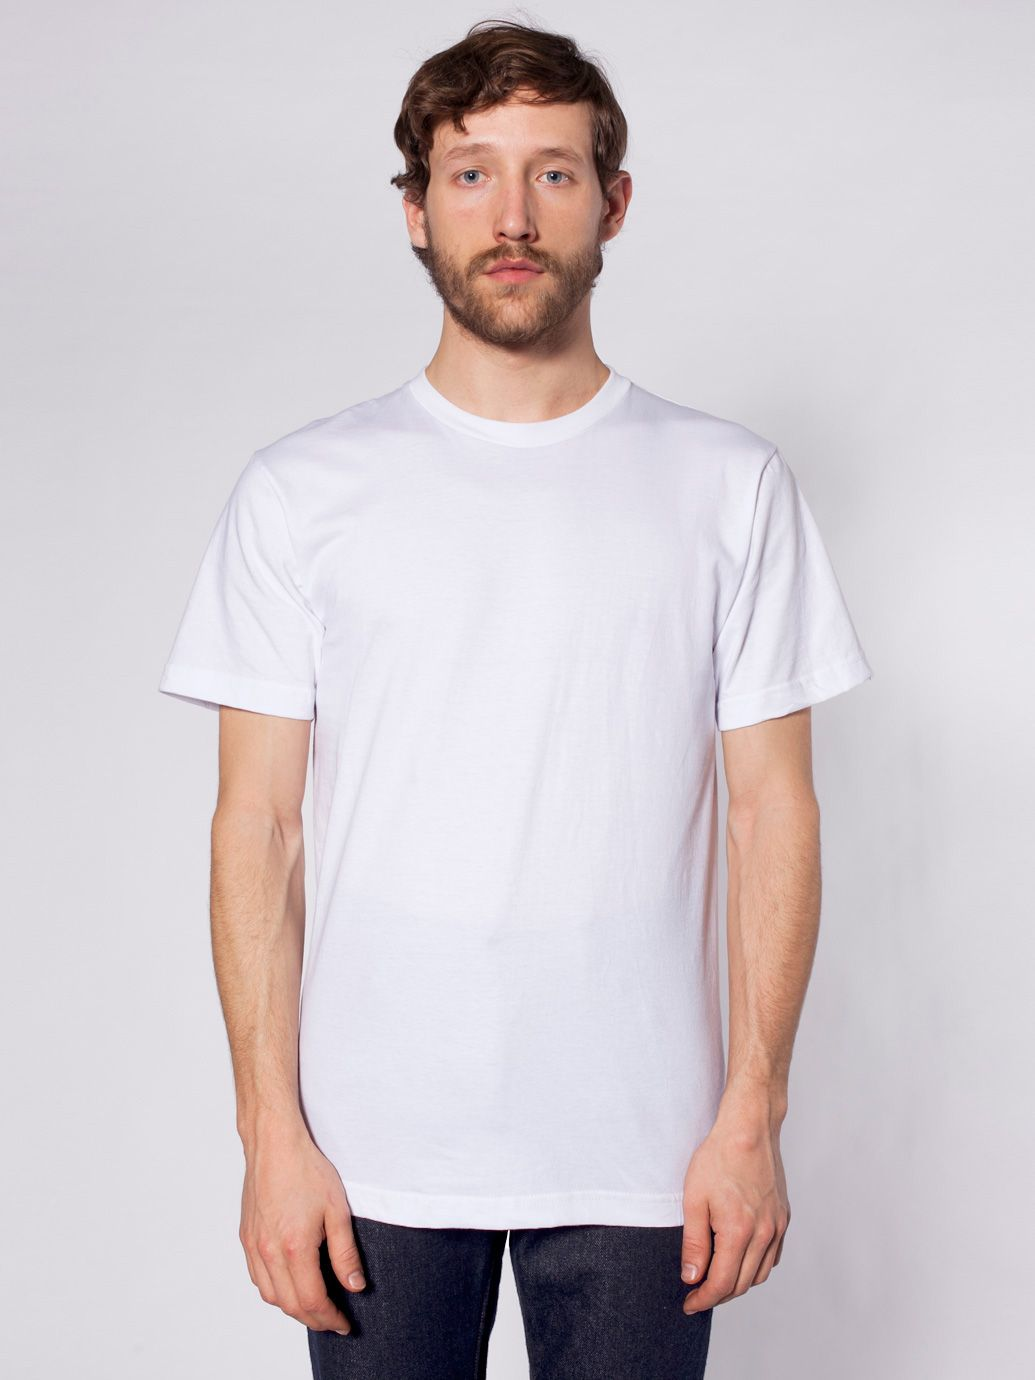 plain white shirt, for the bernards an everyman shirt, essential ...